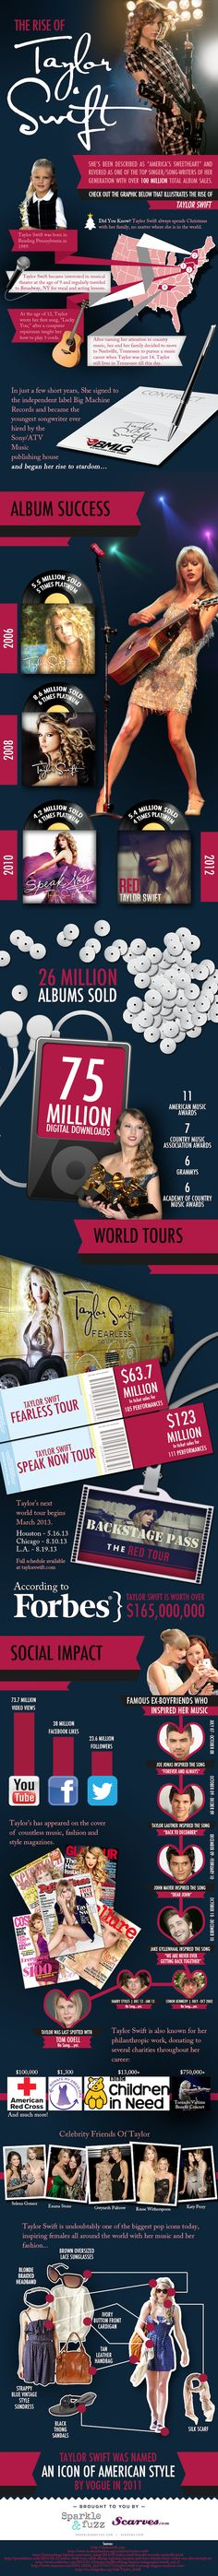 The Rise Of Taylor Swift [Infographic]